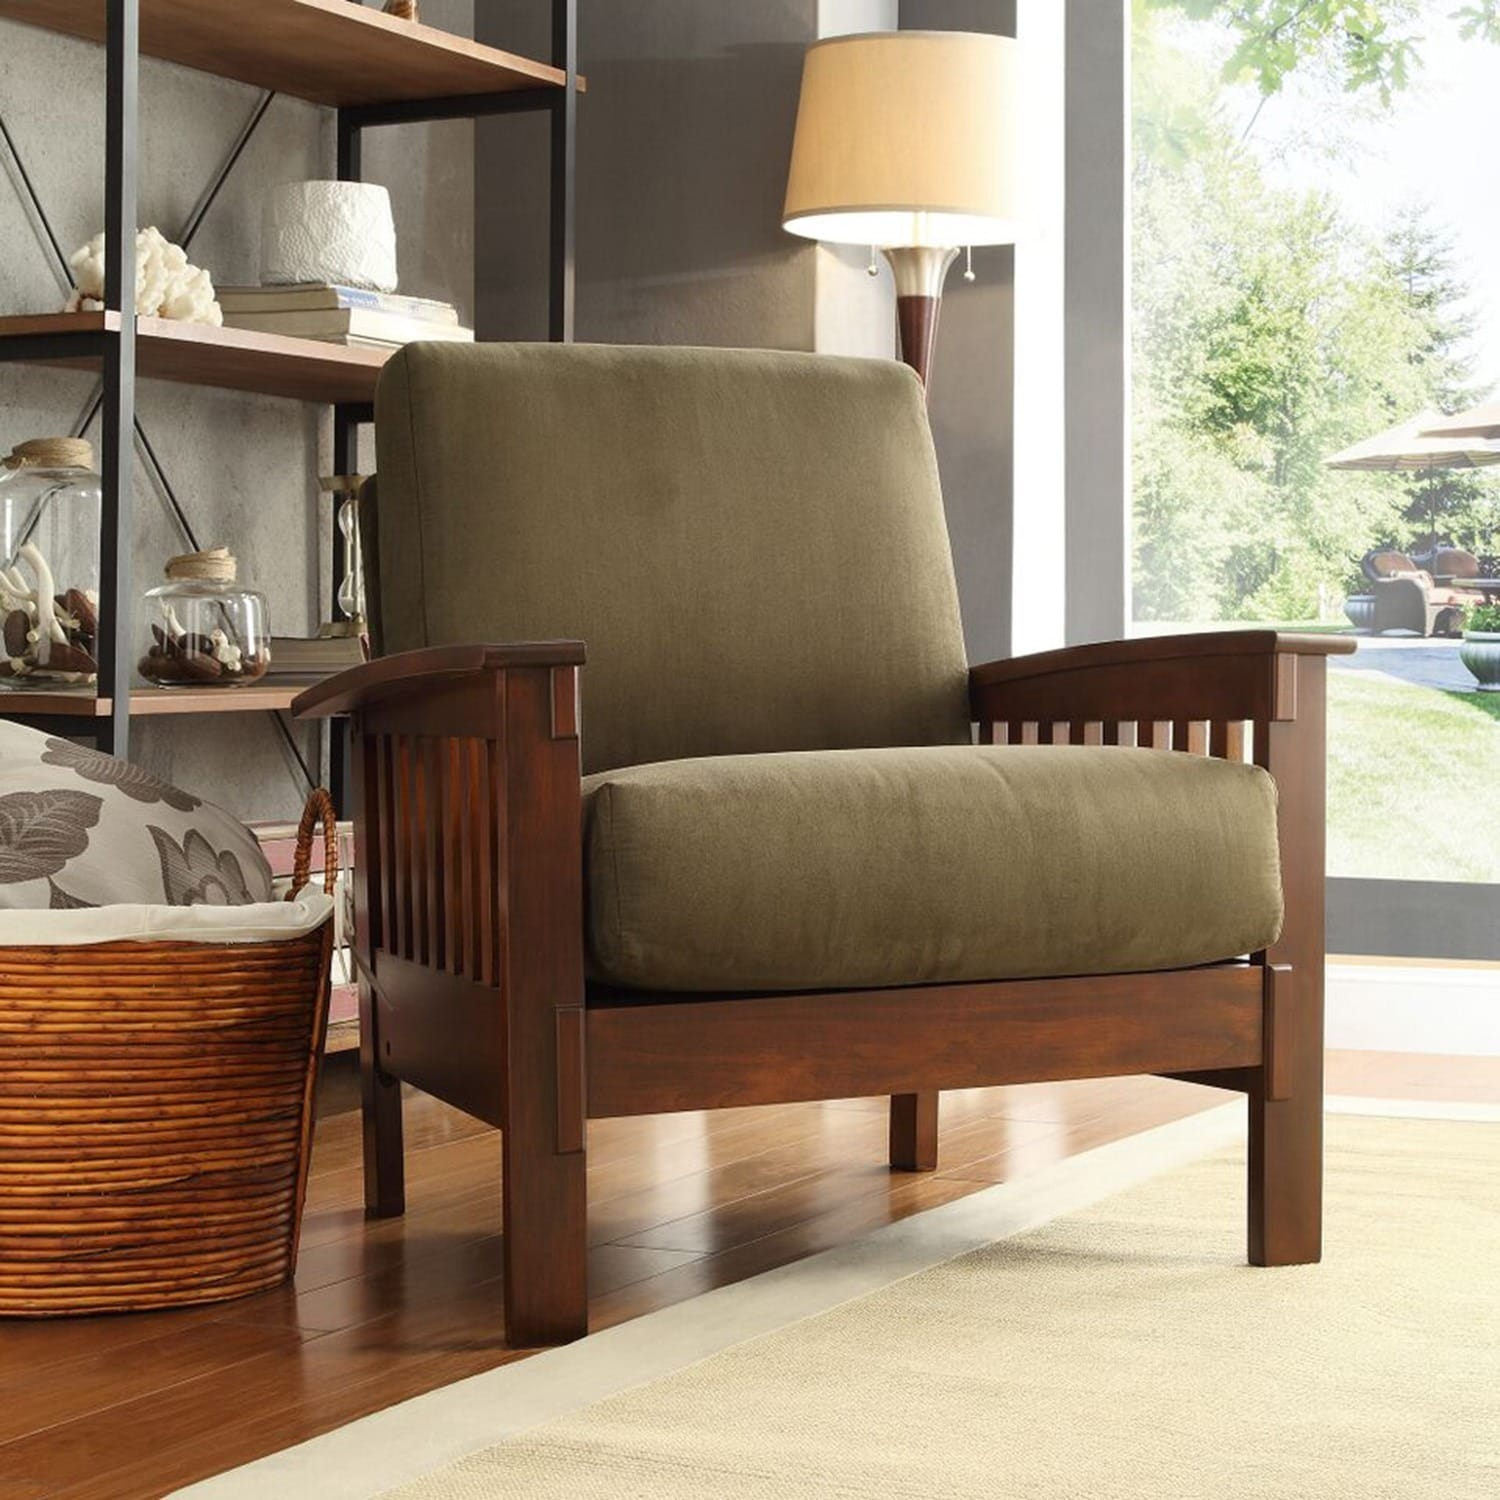 Accent Chairs For Living Room Olive Oak Microfiber Comfy Bedroom Low ...